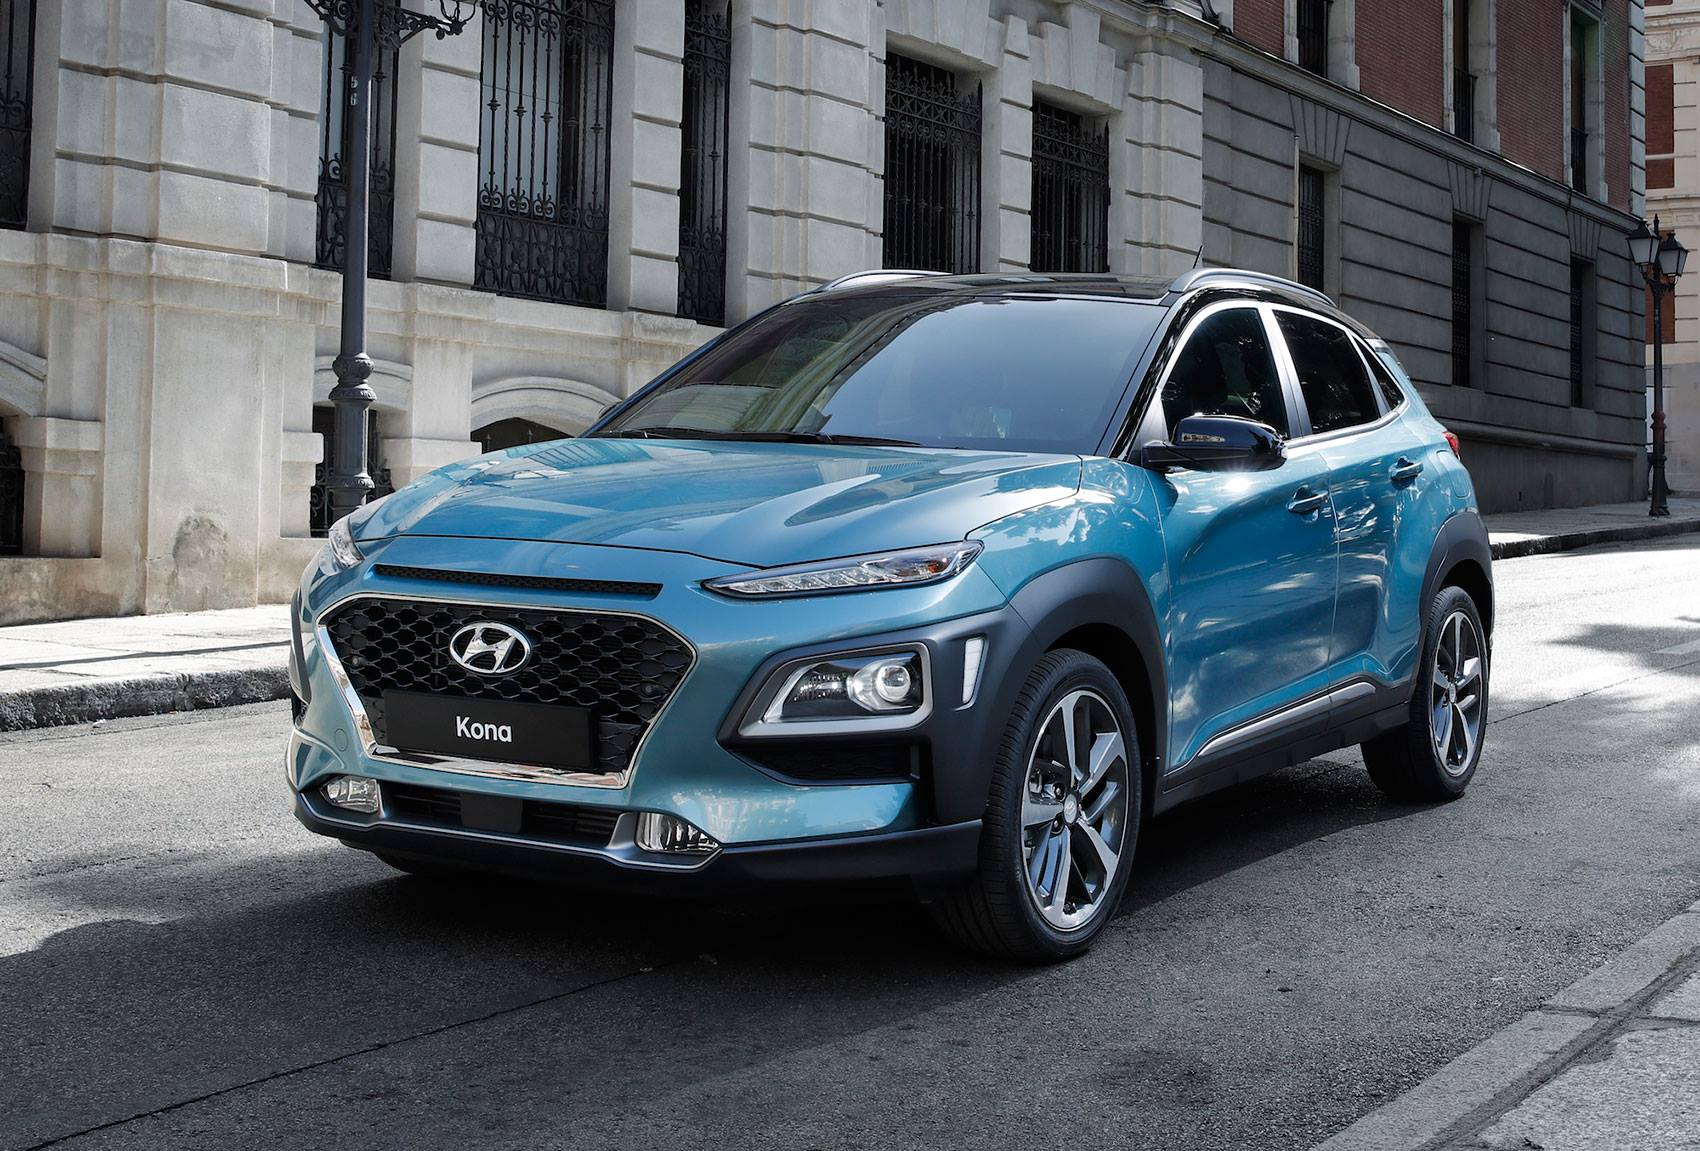 2018 Hyundai Kona Revealed, It Is The Brand's Juke Fighter